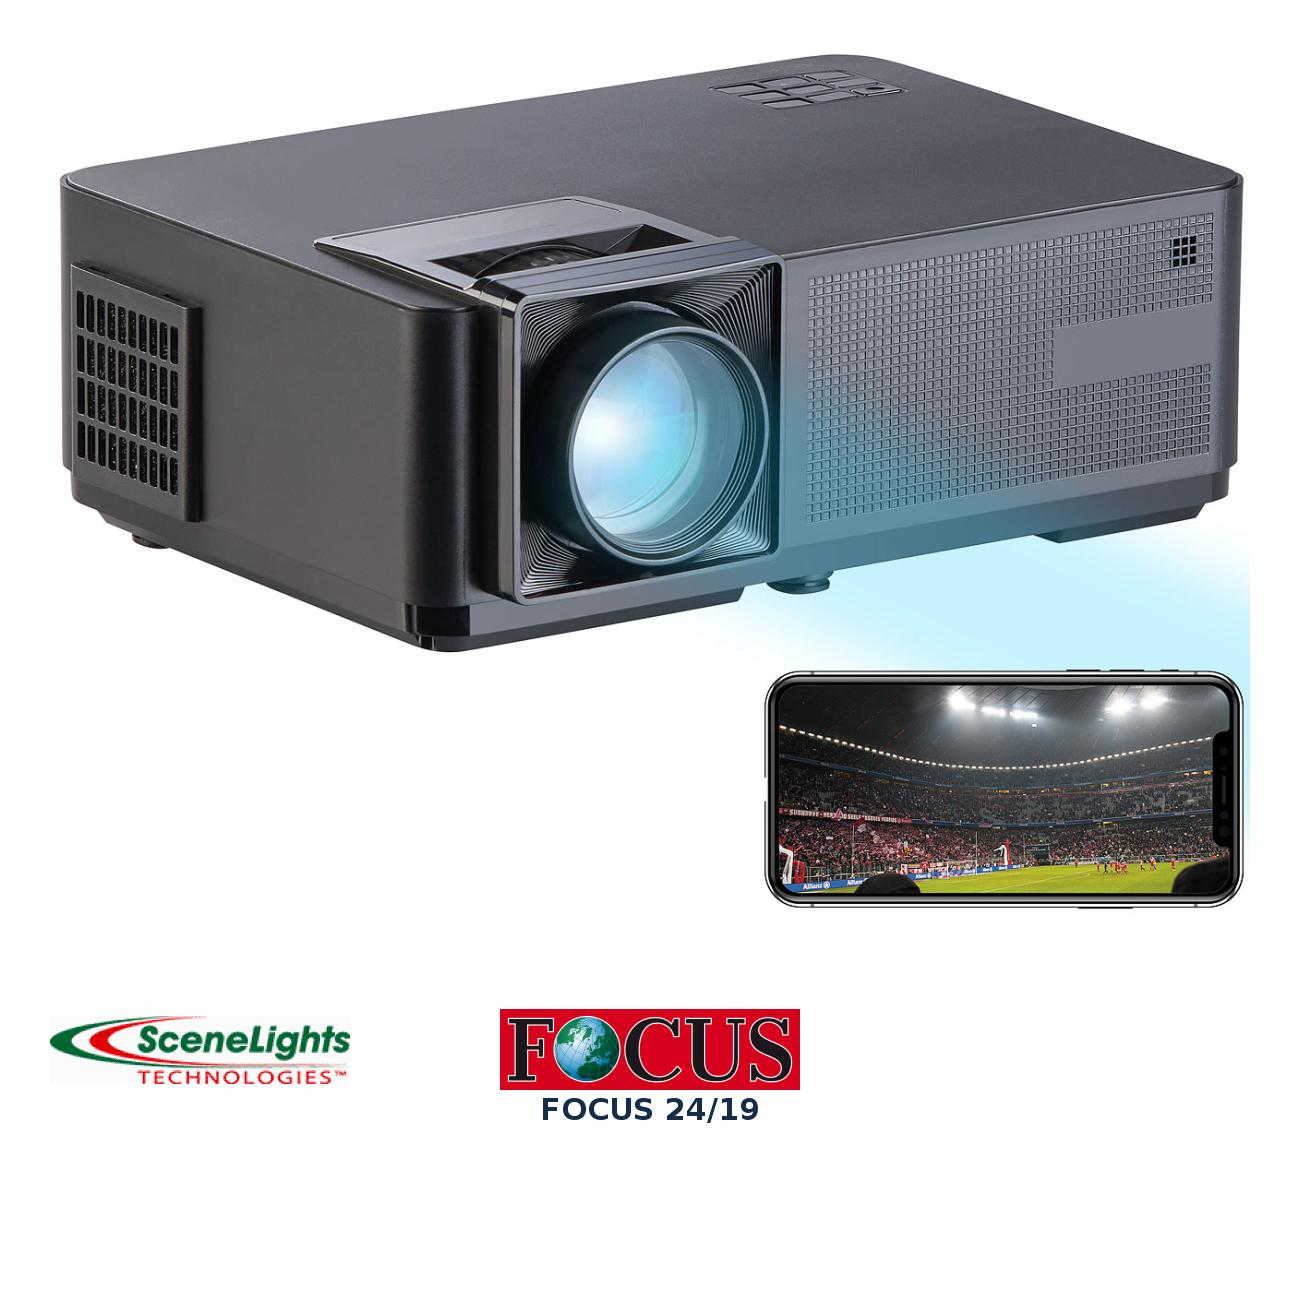 LED-LCD-Beamer mit WLAN, Media-Player, 1280x800 Pixel (WXGA), 3.000 lm